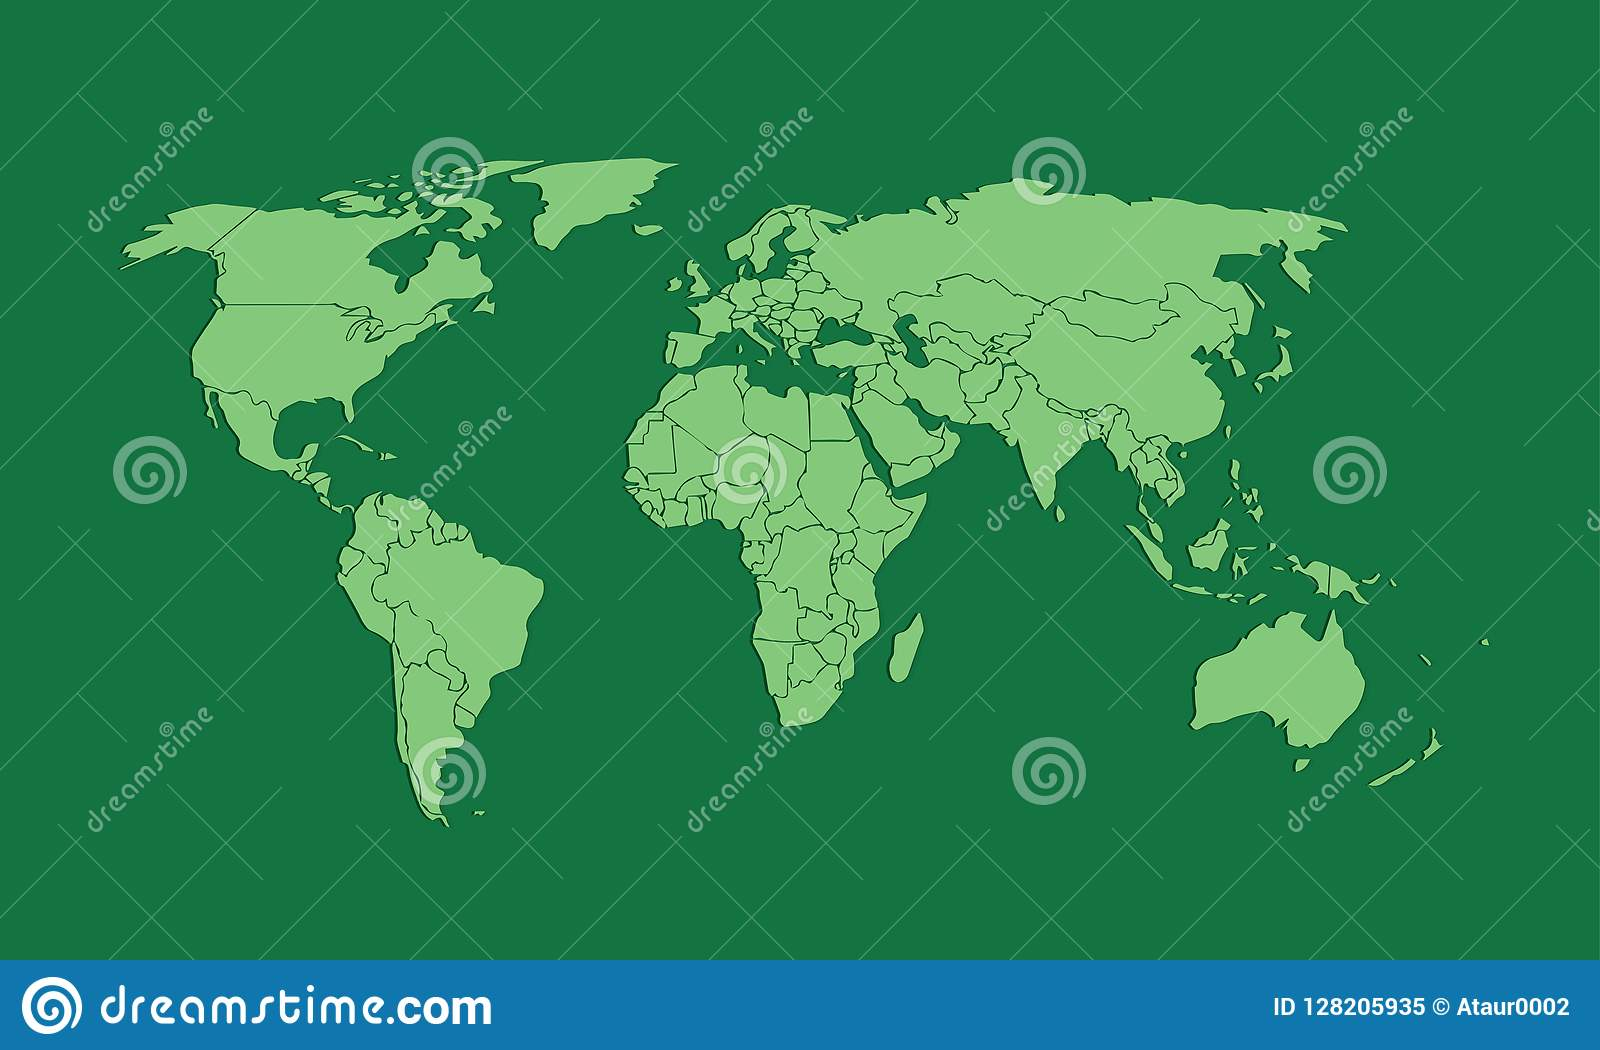 A Green World Map Or Atlas Of Different Countries With ...